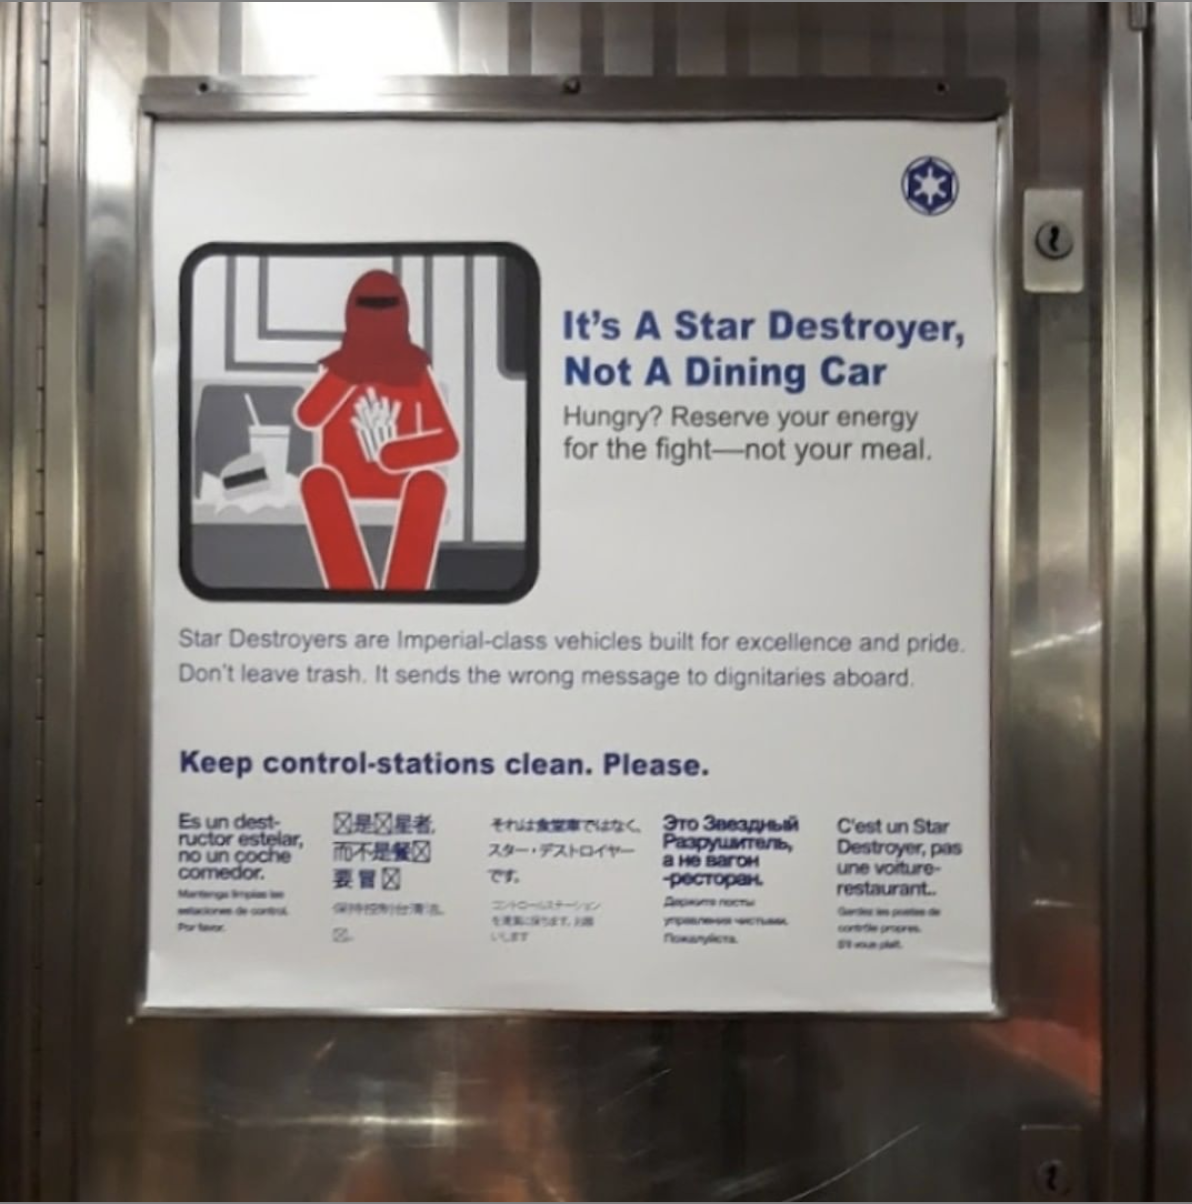 poster inside of an MTA subway cart cautioning riders by using themes from Star Wars films